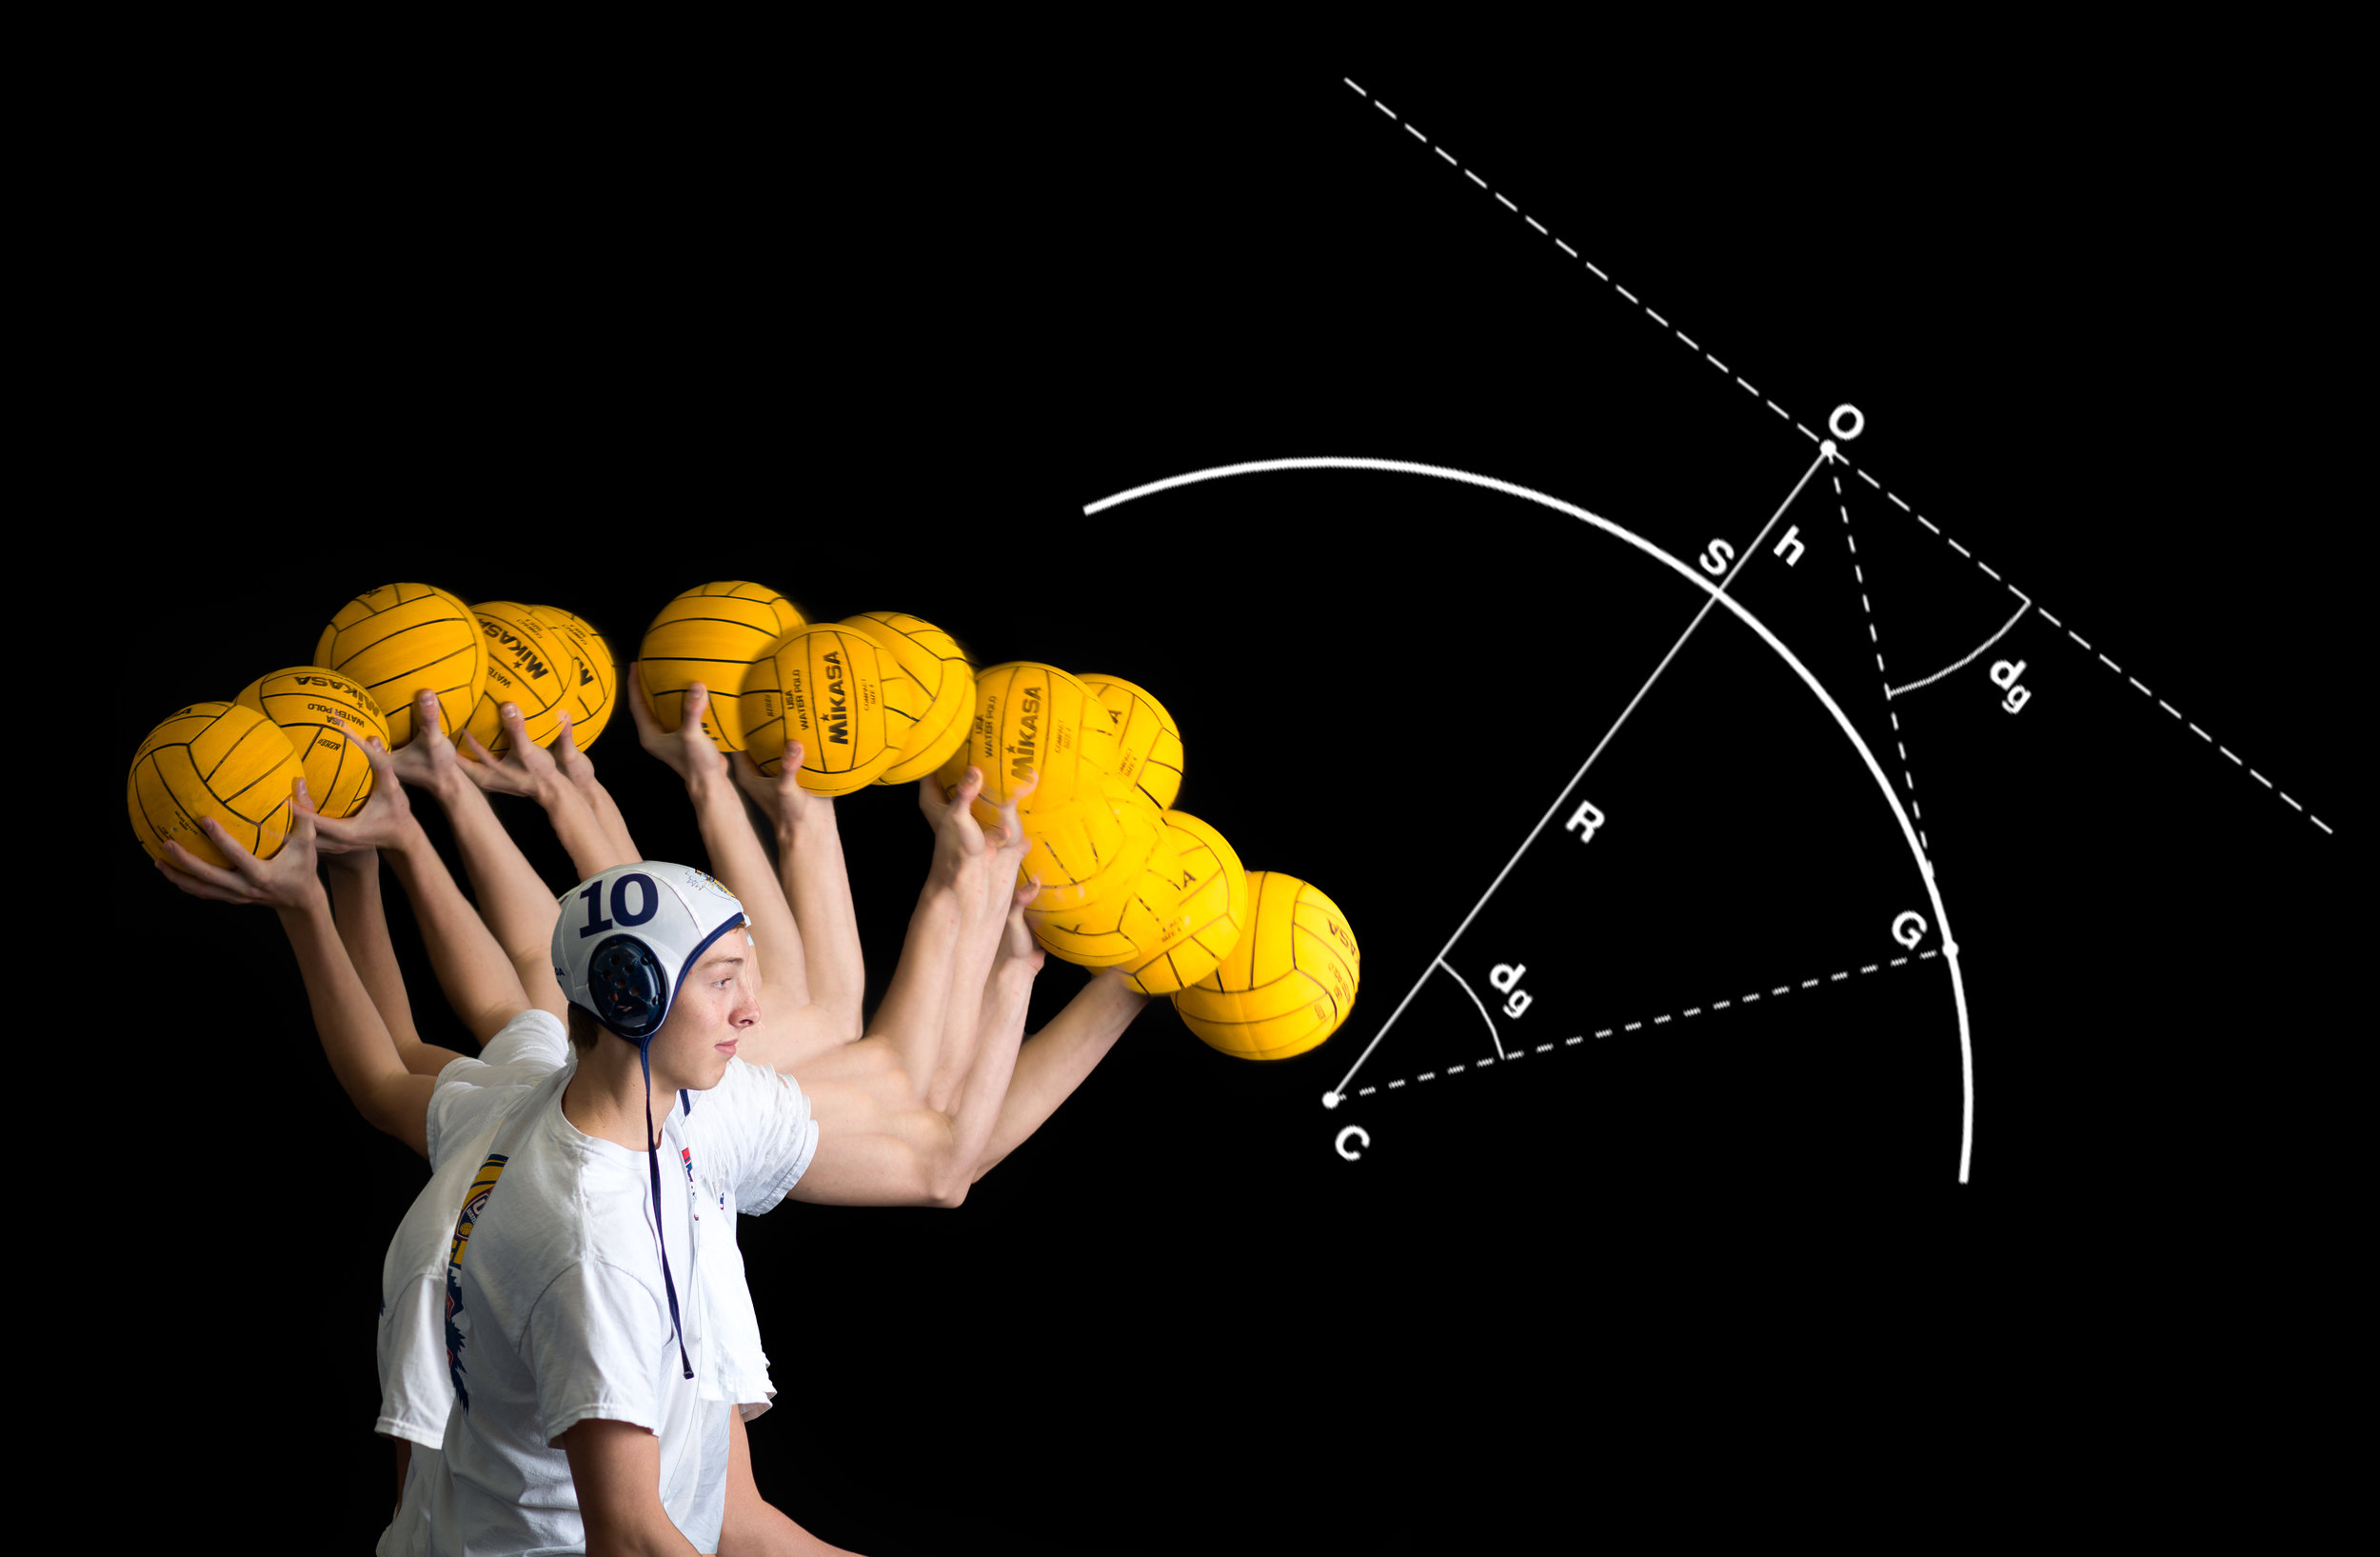 Water Polo and Math